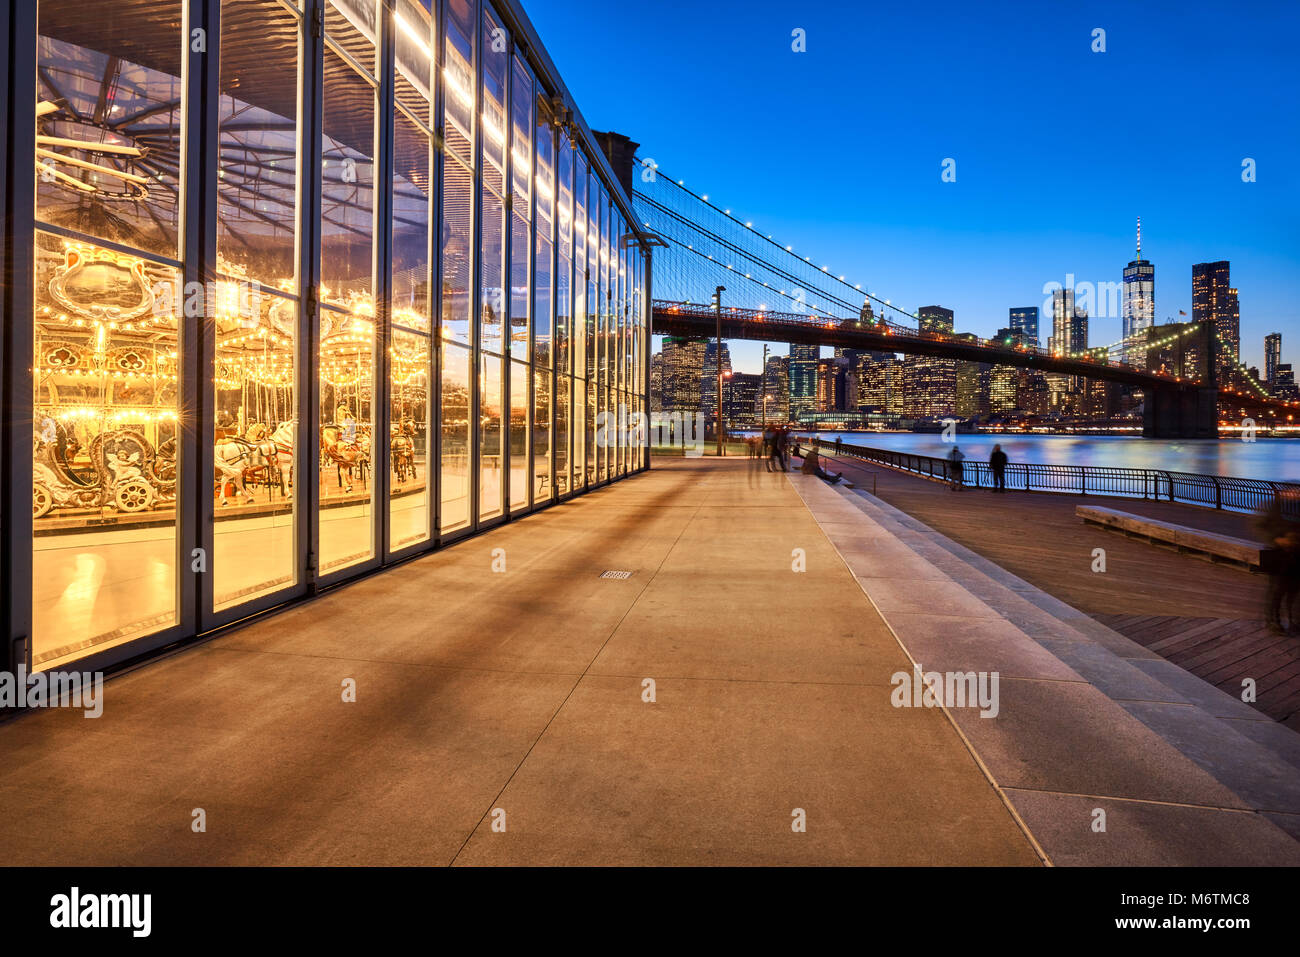 Brooklyn Bridge Park at twilight with view on the skyscrapers of Lower Manhattan, the Brooklyn Bridge and the carousel. - Stock Image